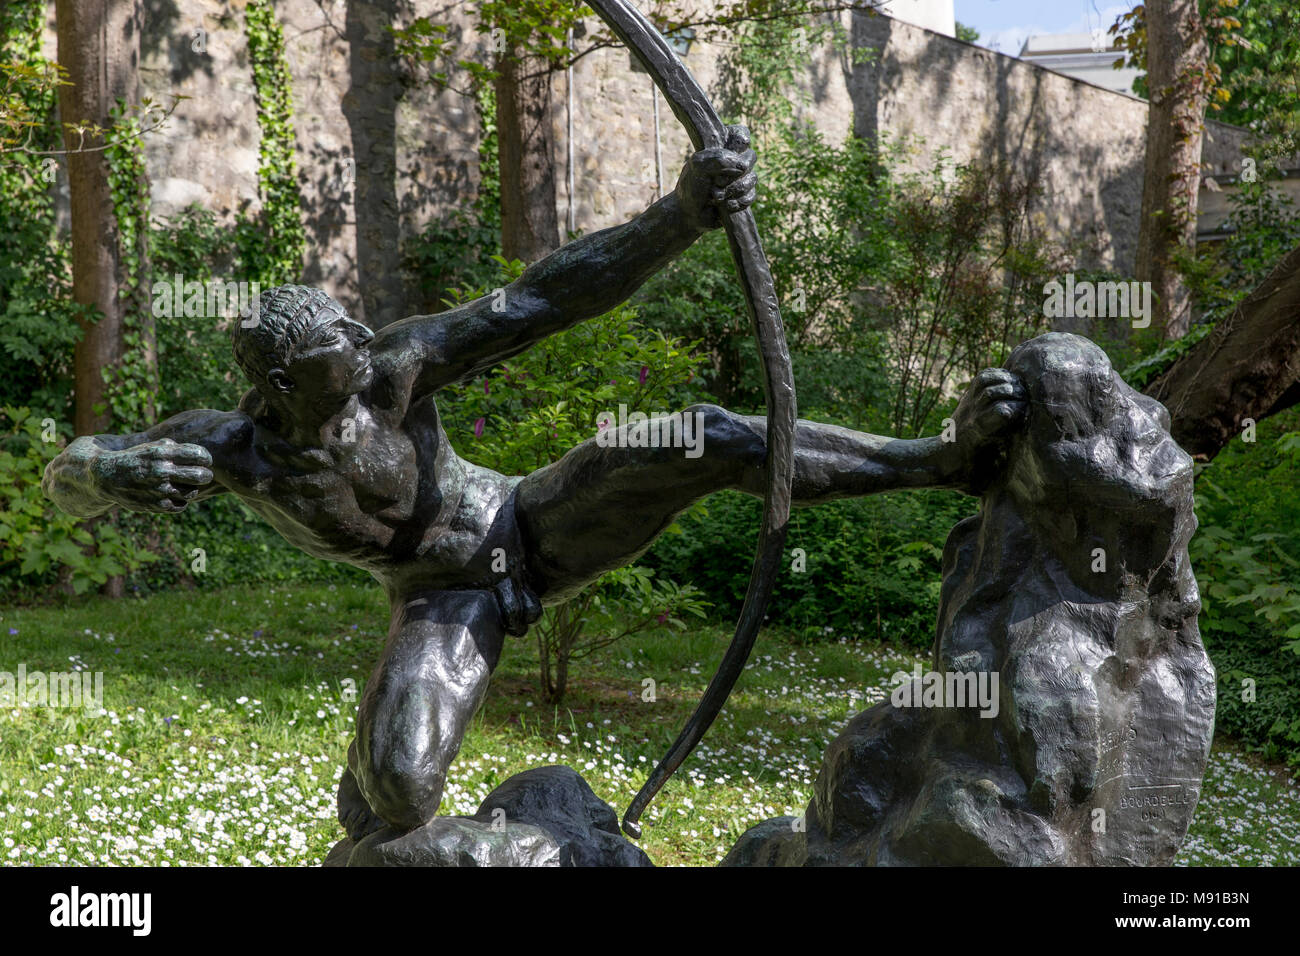 Maurice Denis Museum Saint Germain En Laye France Antoine Bourdelle Herakla S Archer Heracles With A Bow 1909 Bronze Stock Photo Alamy